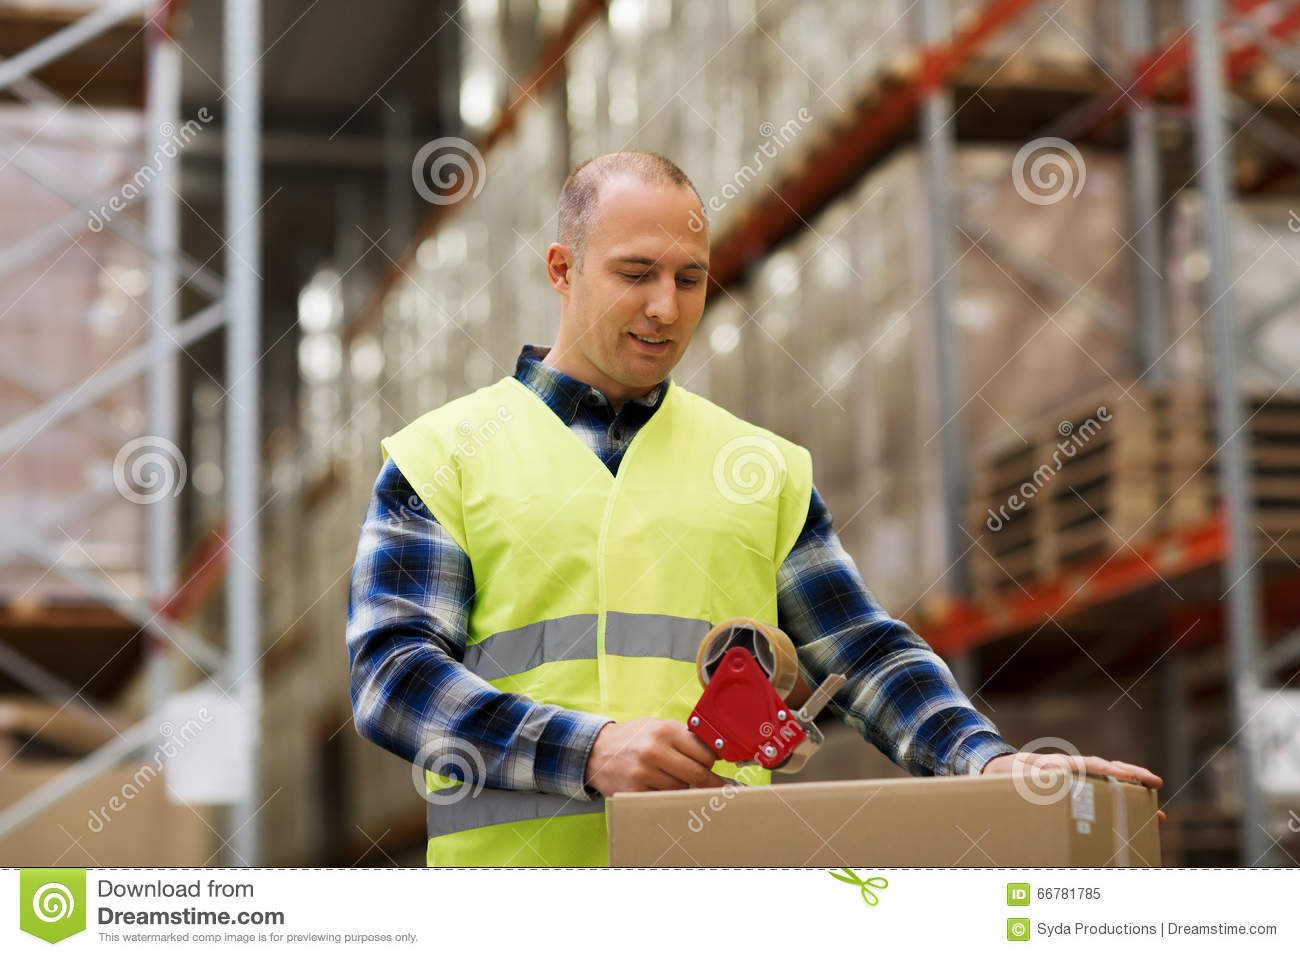 Man in safety vest packing box at warehouse